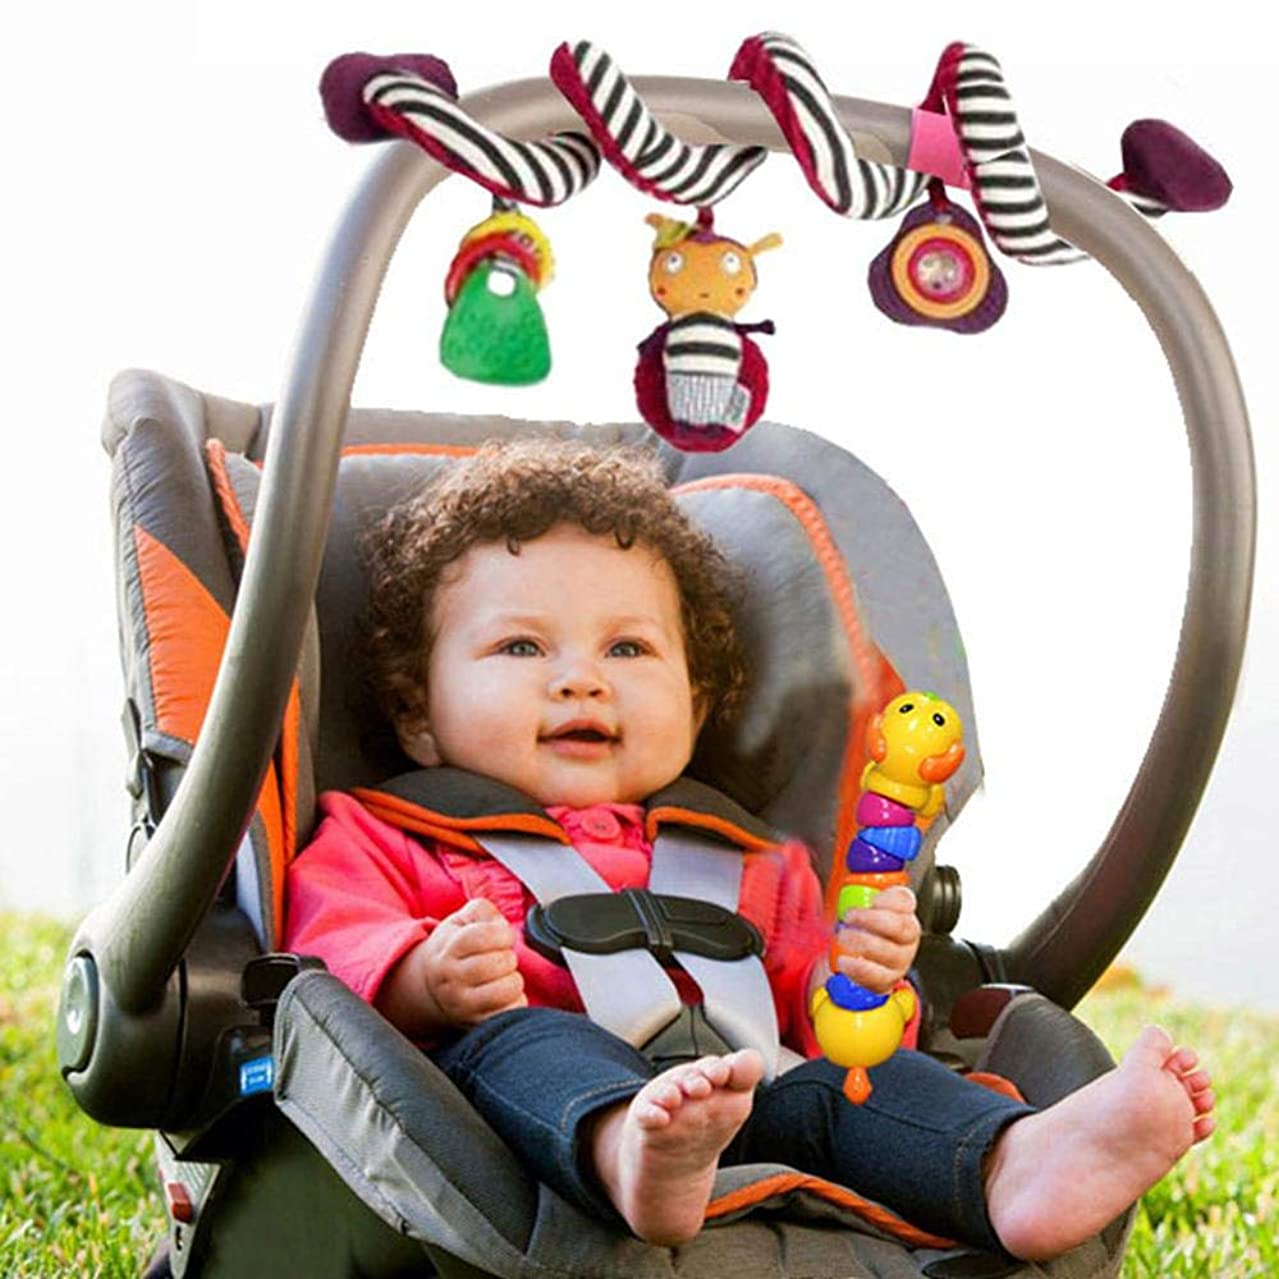 FOONEE Car Seat Rattle Toy, Hanging Plush Toy Cartoon Stroller Rattles Hanging Crib Cot Pram Hanging Rattles Spiral Stroller Seat Toy Stroller Arch Rattles Baby Multi-Function Bell Bed Winding Toy